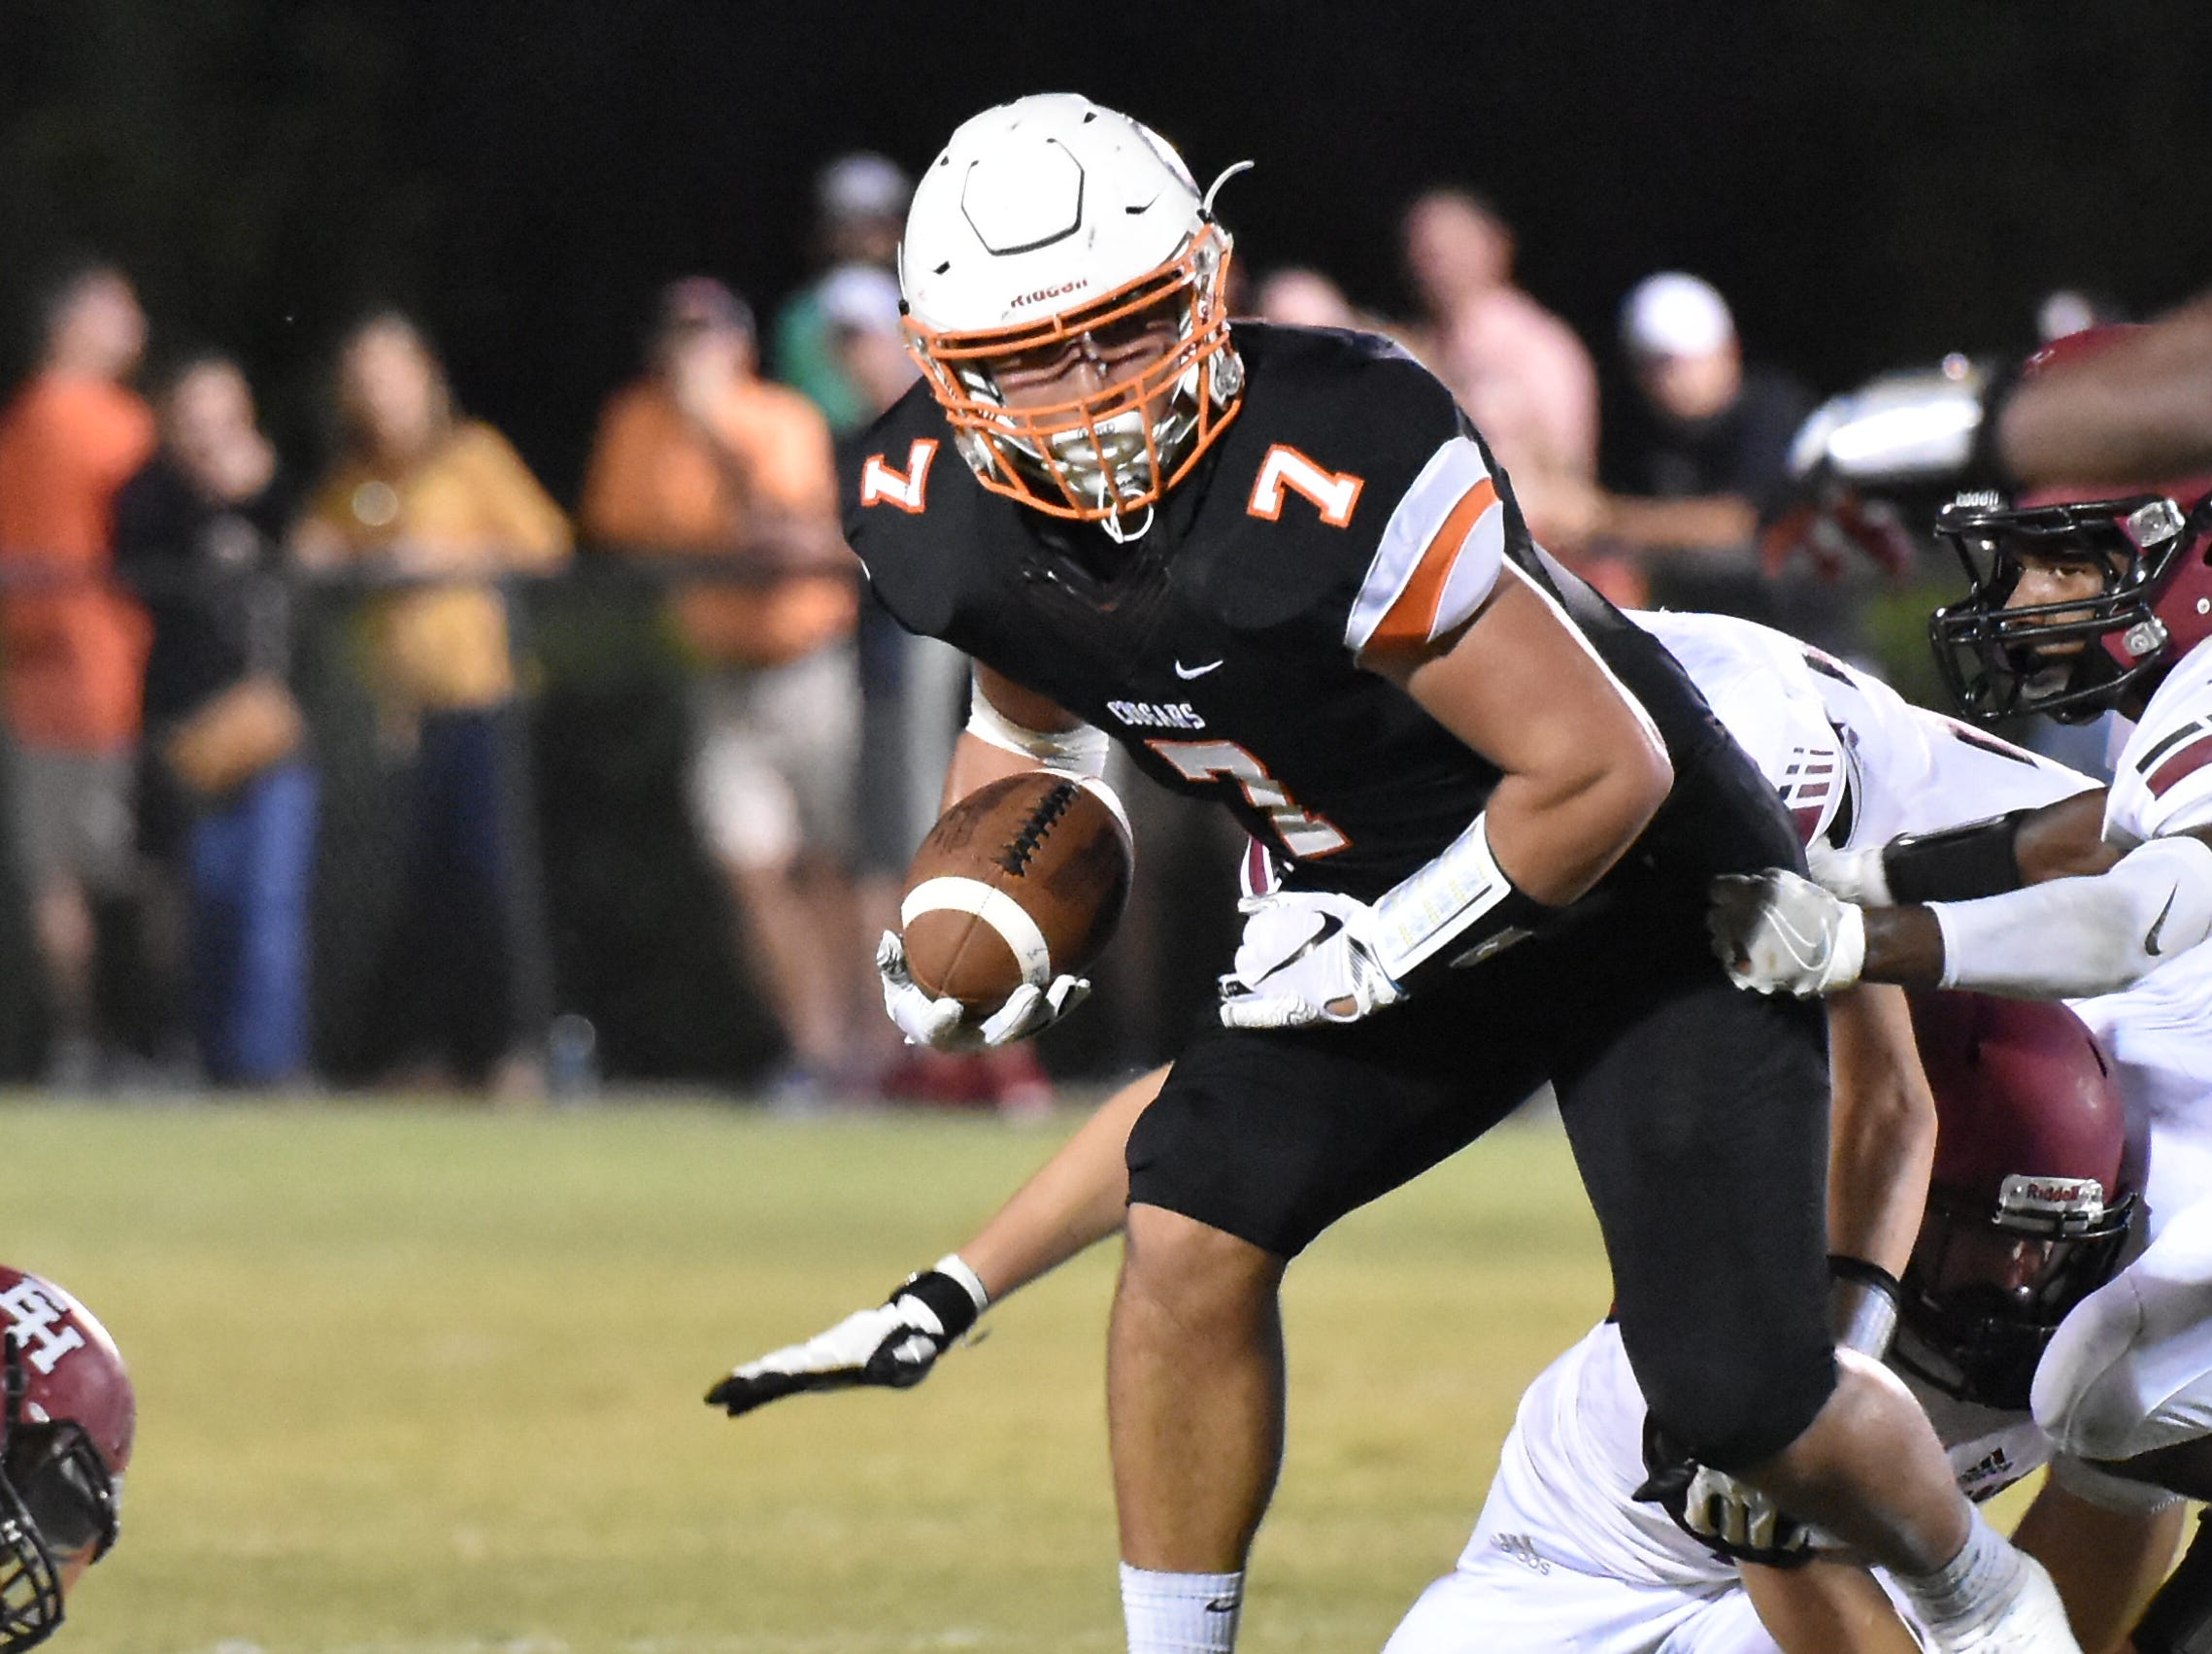 MTCS's Drew Berry tries to break loose Friday night against Ezell-Harding.